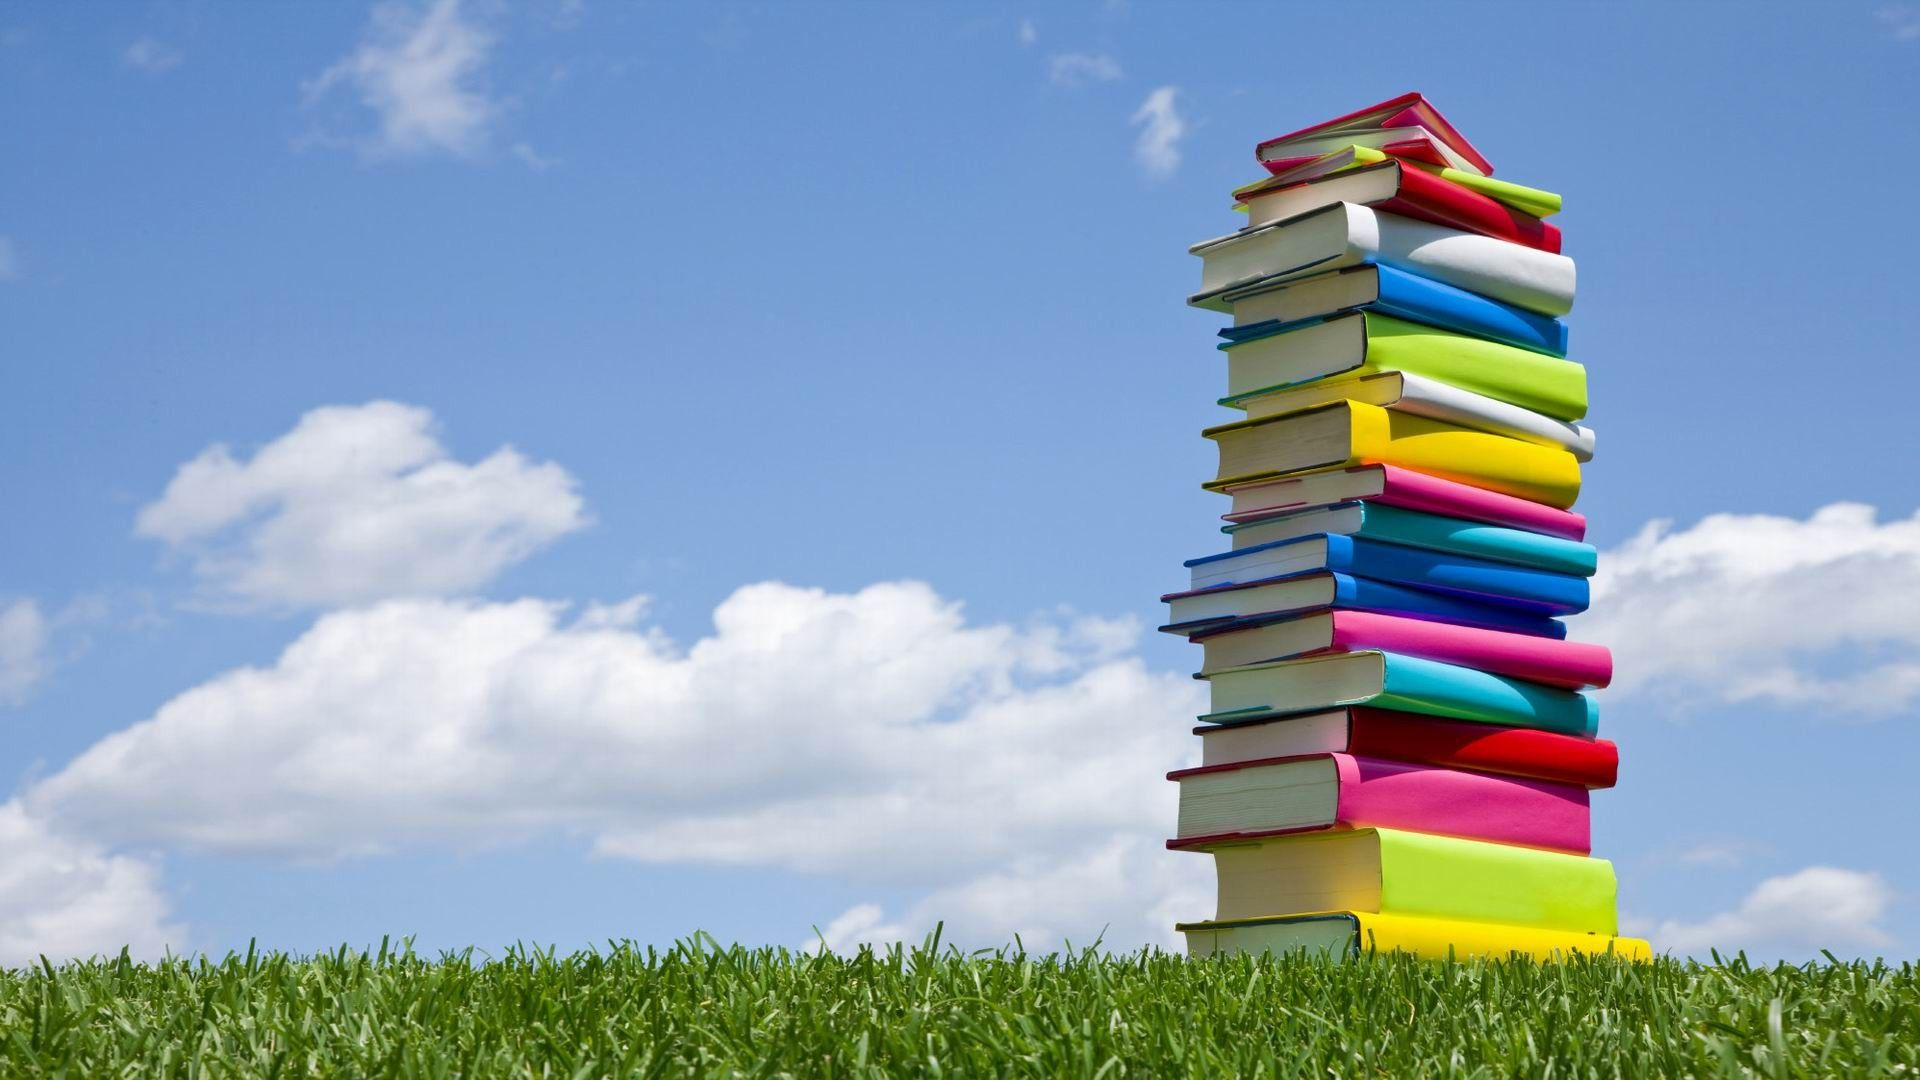 undefined books wallpaper (34 wallpapers) | adorable wallpapers